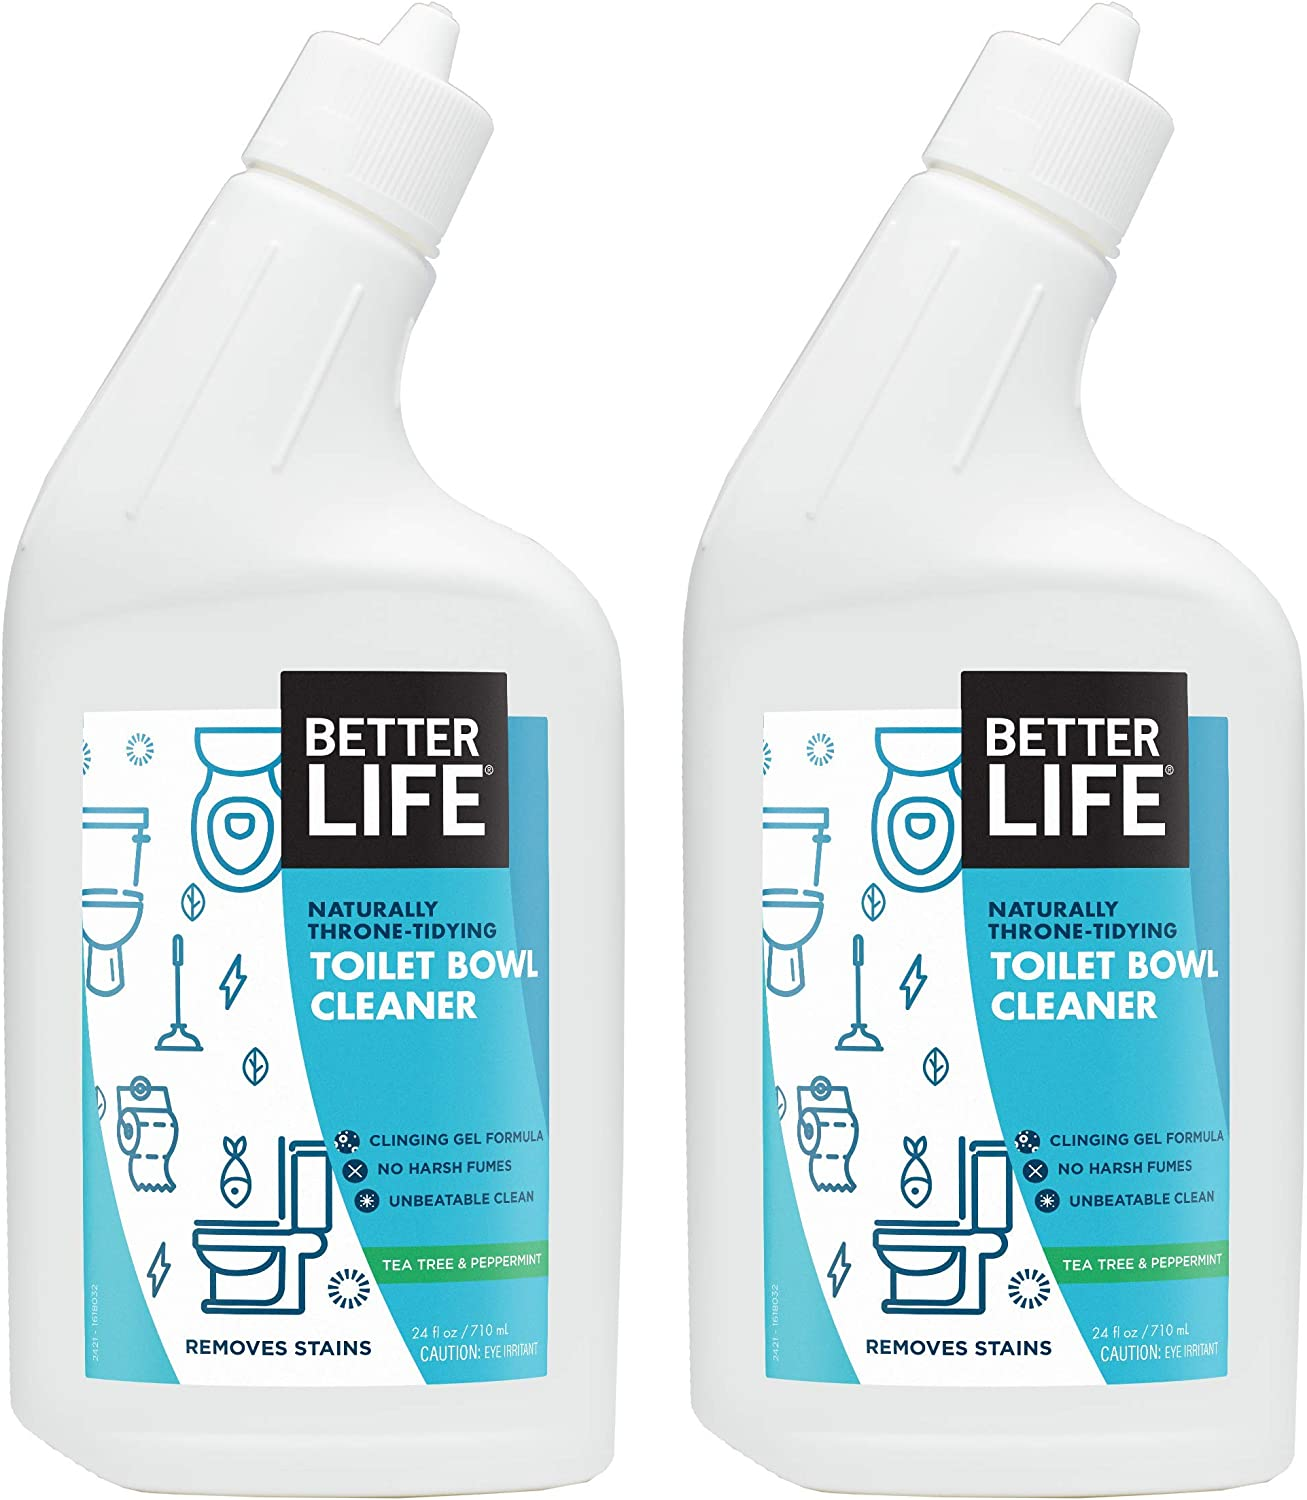 Better Life Natural Toilet Bowl Cleaner, 24 Ounce (Pack of 2) Tea Tree & Peppermint Scent: Health & Personal Care